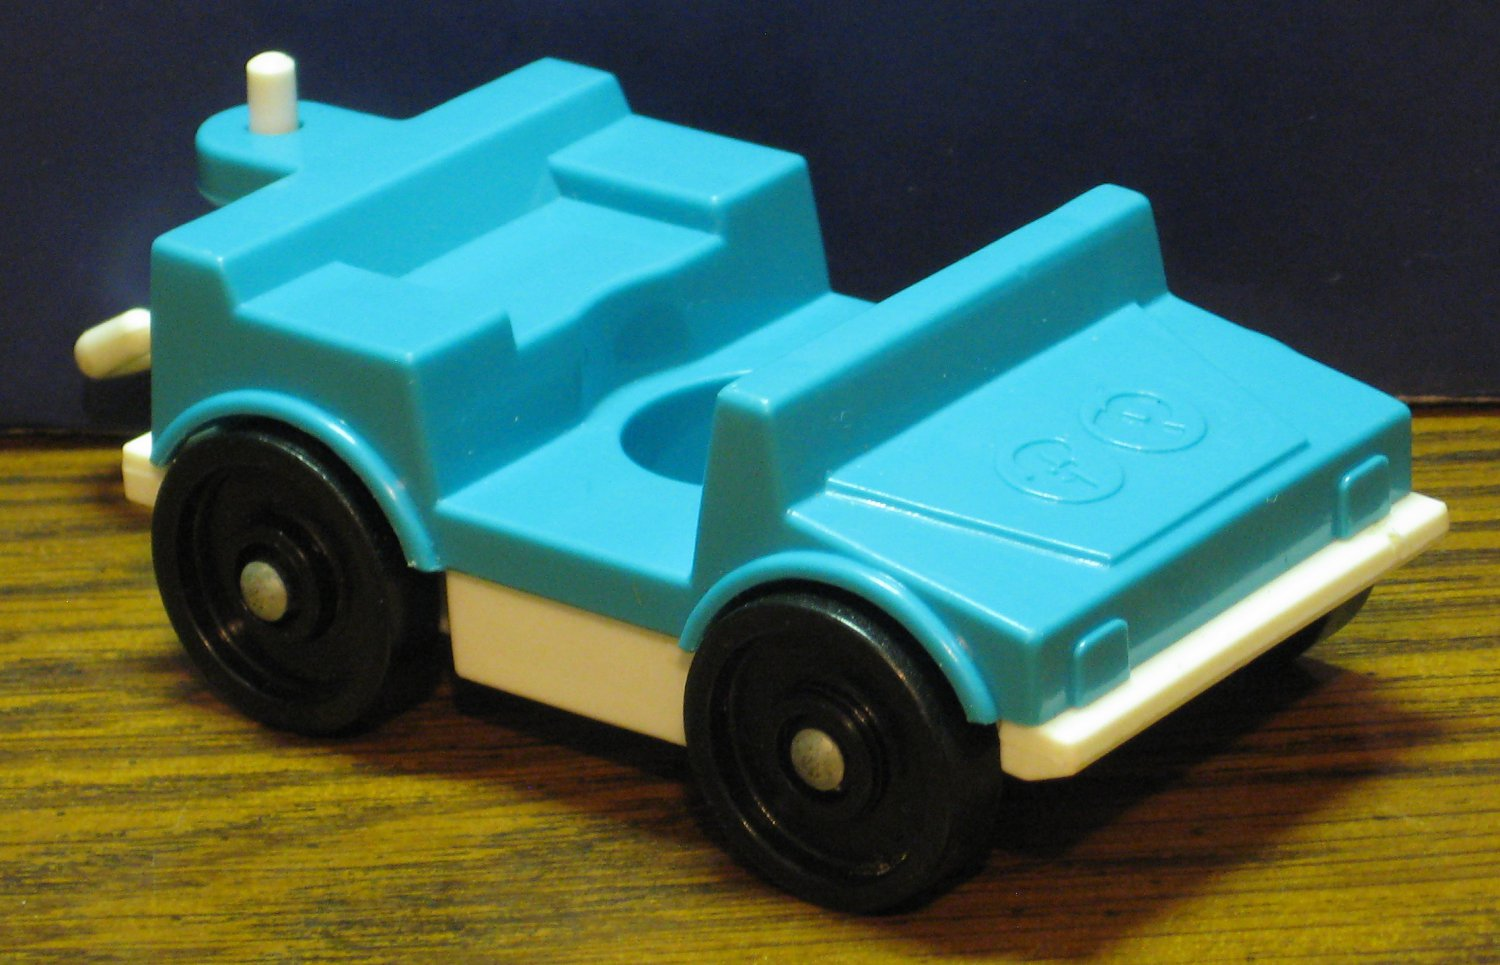 Fisher Price Little People Zoo 916 Tram Truck - Blue / White - 1985 Vintage